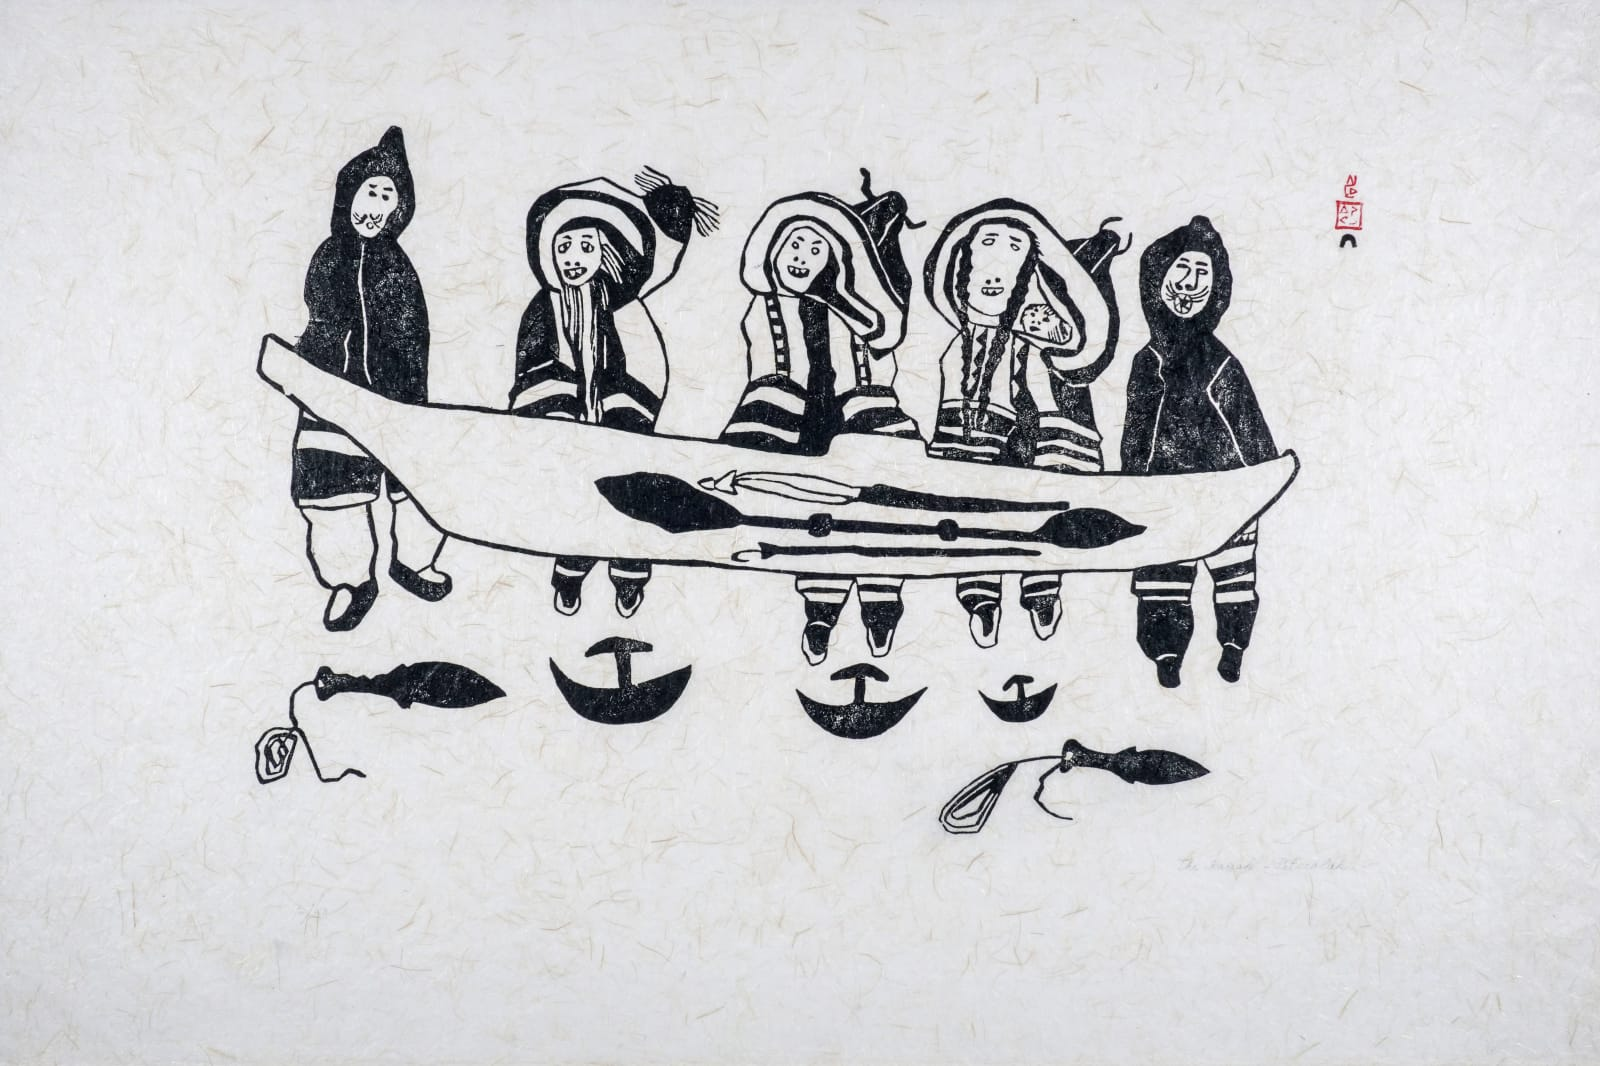 PITSEOLAK ASHOONA, R.C.A., O.C., (1904-1983) KINNGAIT (CAPE DORSET) The Kayak (Kayak and Family), 1962 stonecut, 24 x 28 in (61 x 71.1 cm) ESTIMATE: $800 — $1,200 New Price: $600